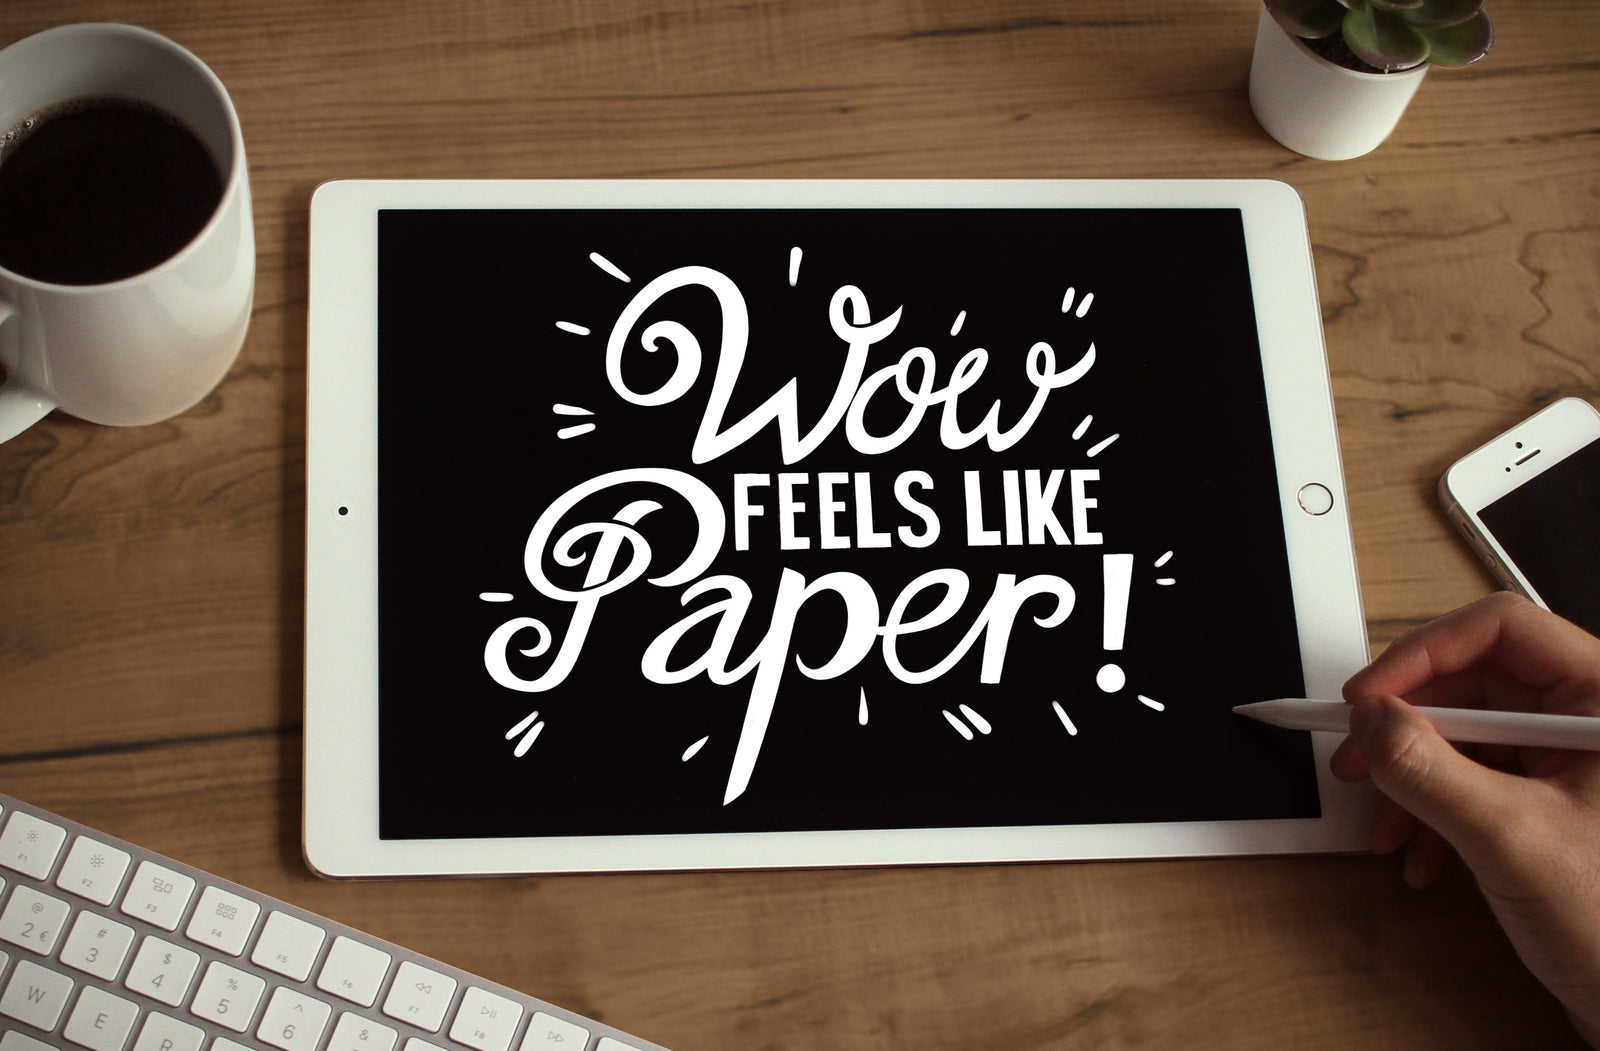 PaperLike Screen Protector: write and draw on your iPad like